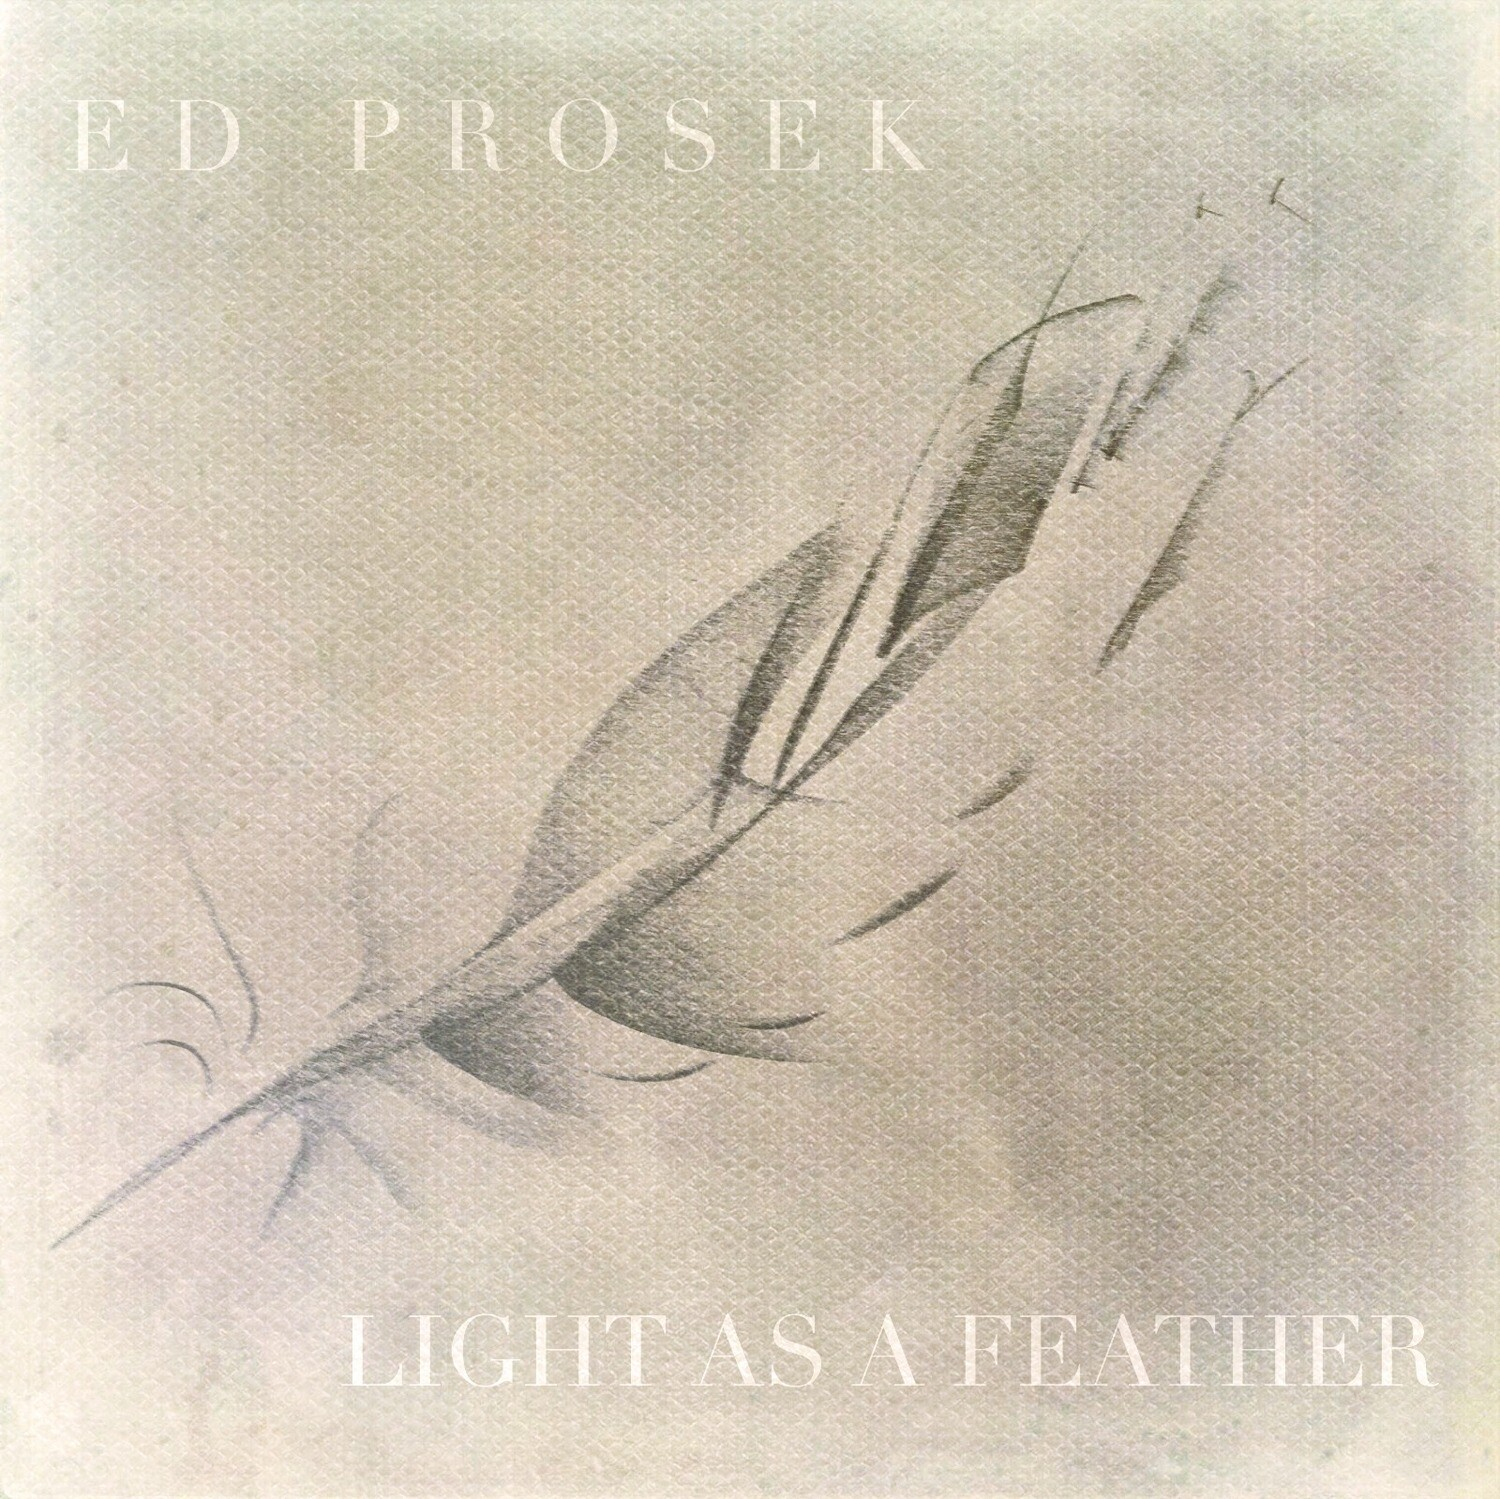 NEW: Light As A Feather EP